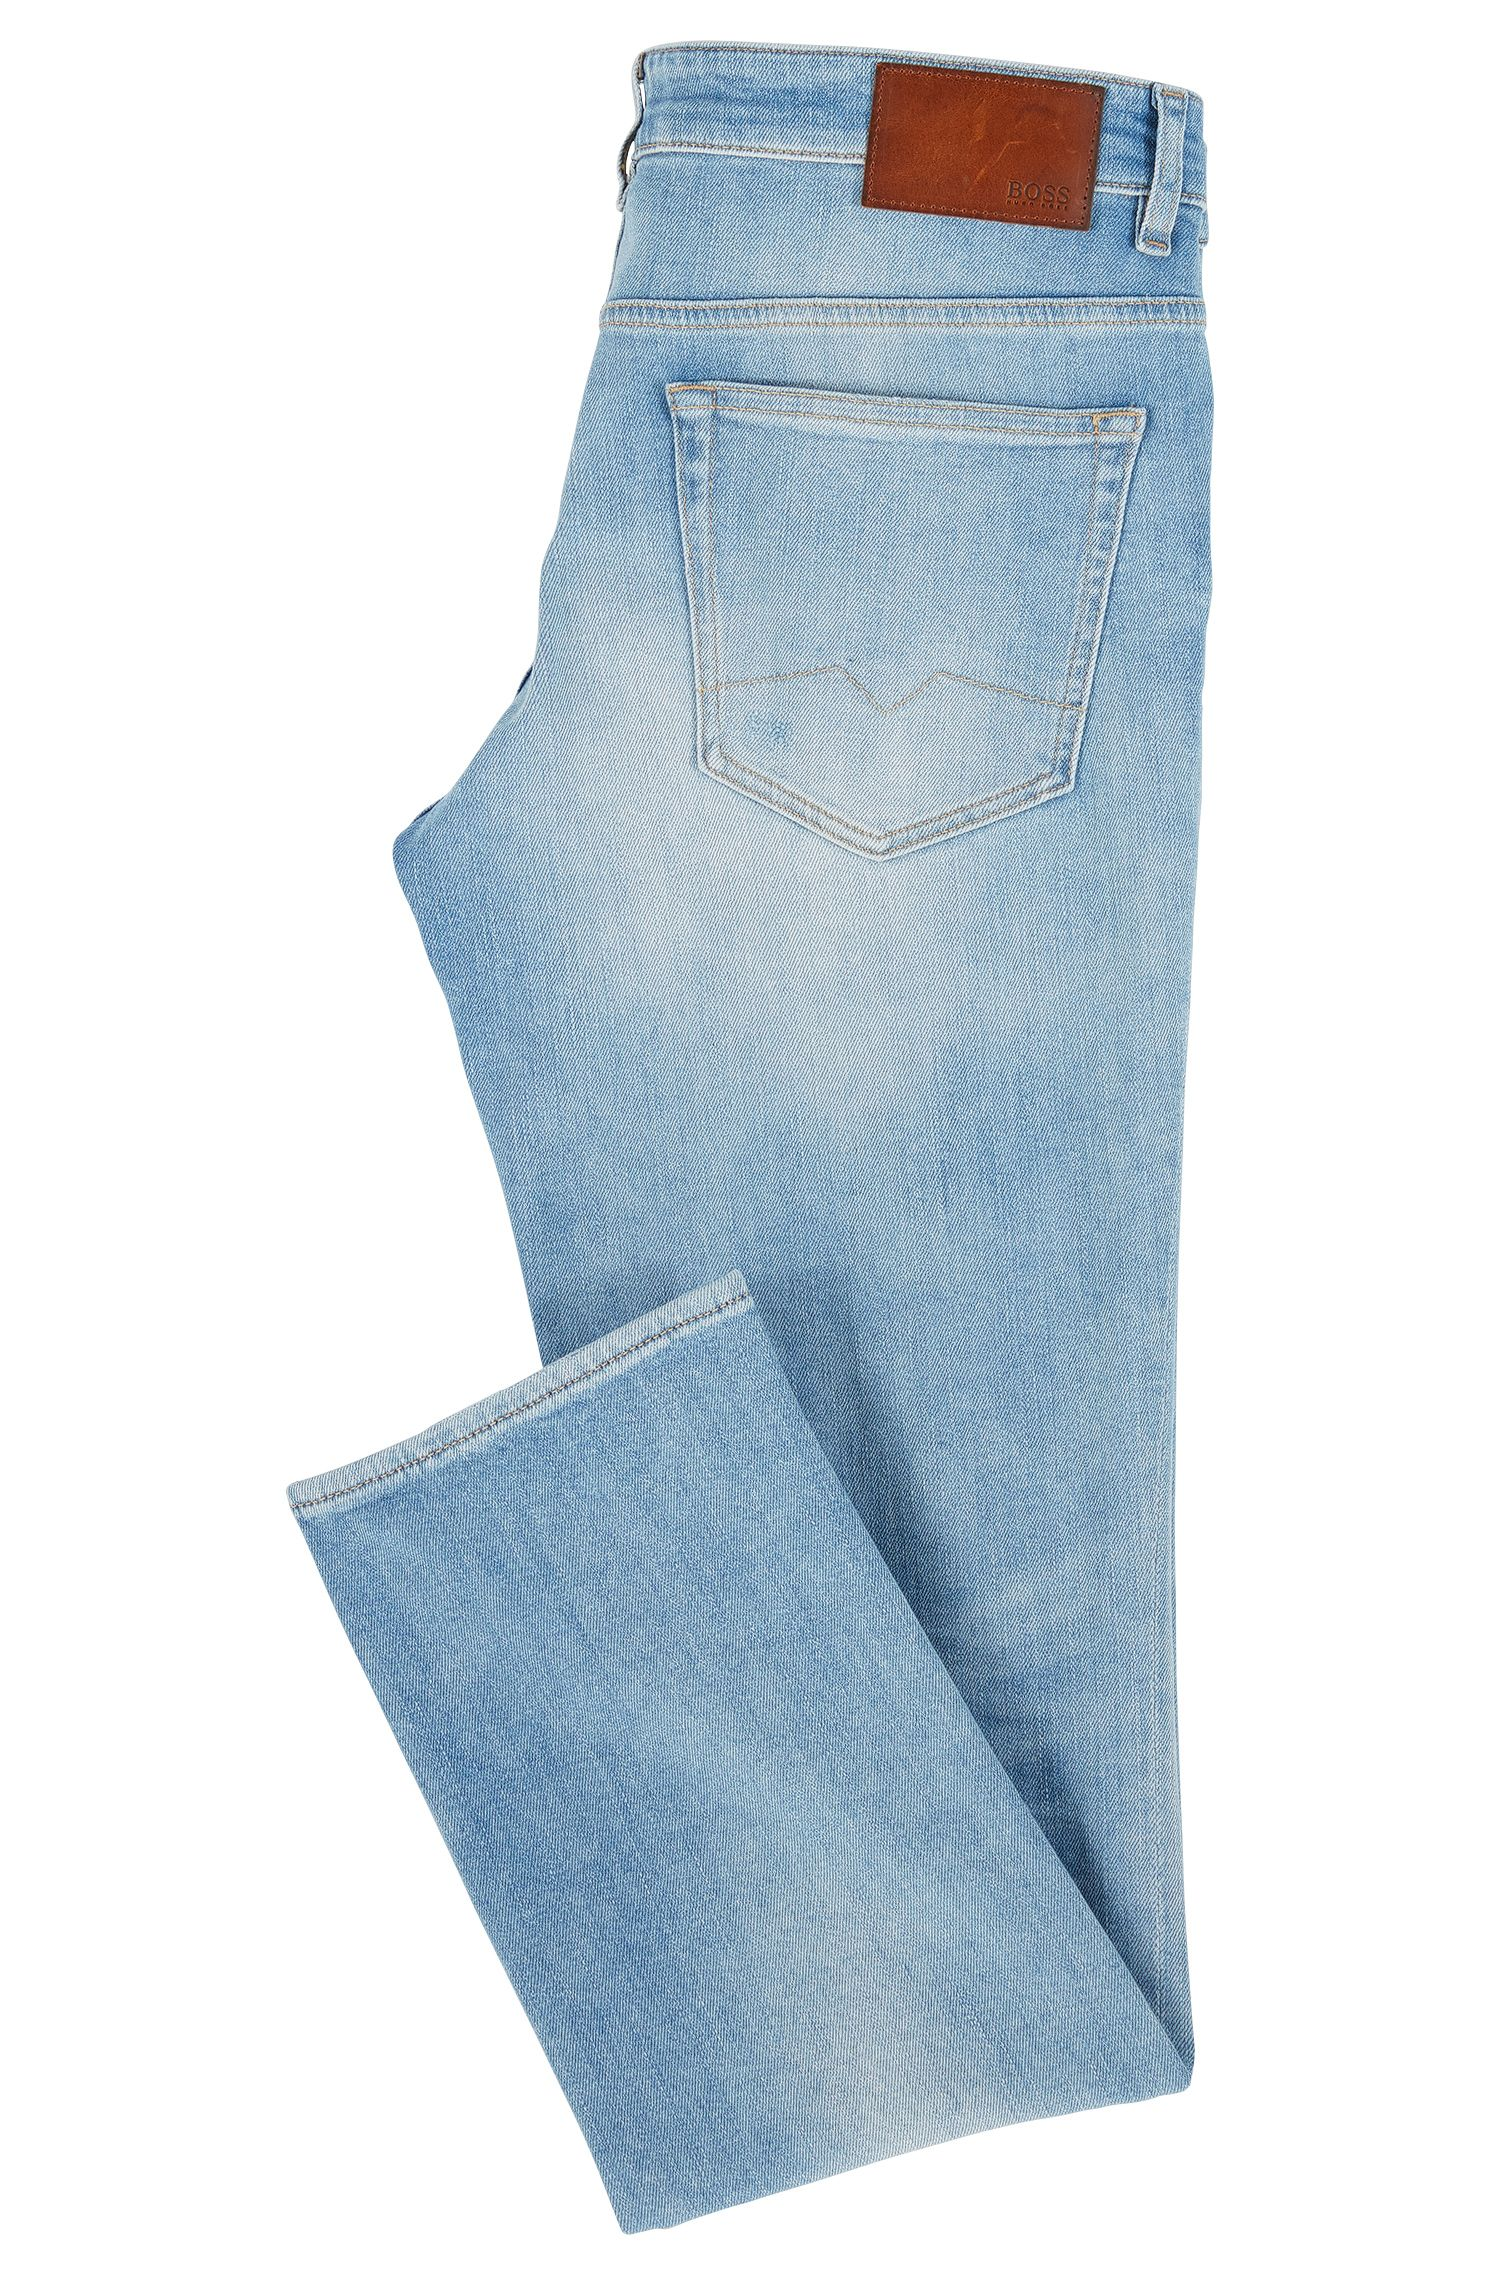 Slim-Fit Jeans aus komfortablem Stretch-Denim im Vintage-Look